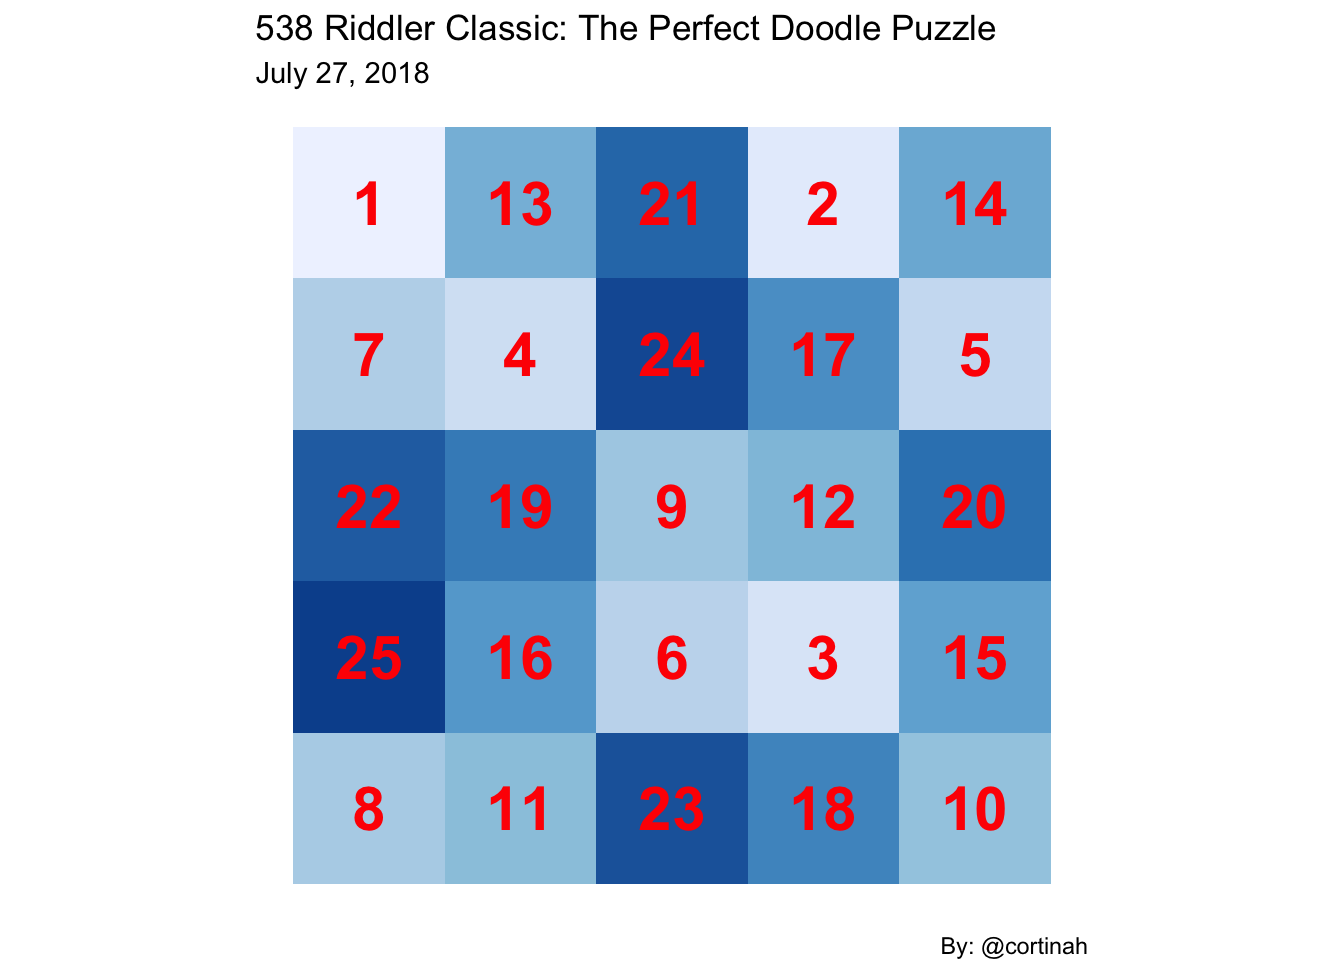 Riddler Classic: The Perfect Doodle Puzzle